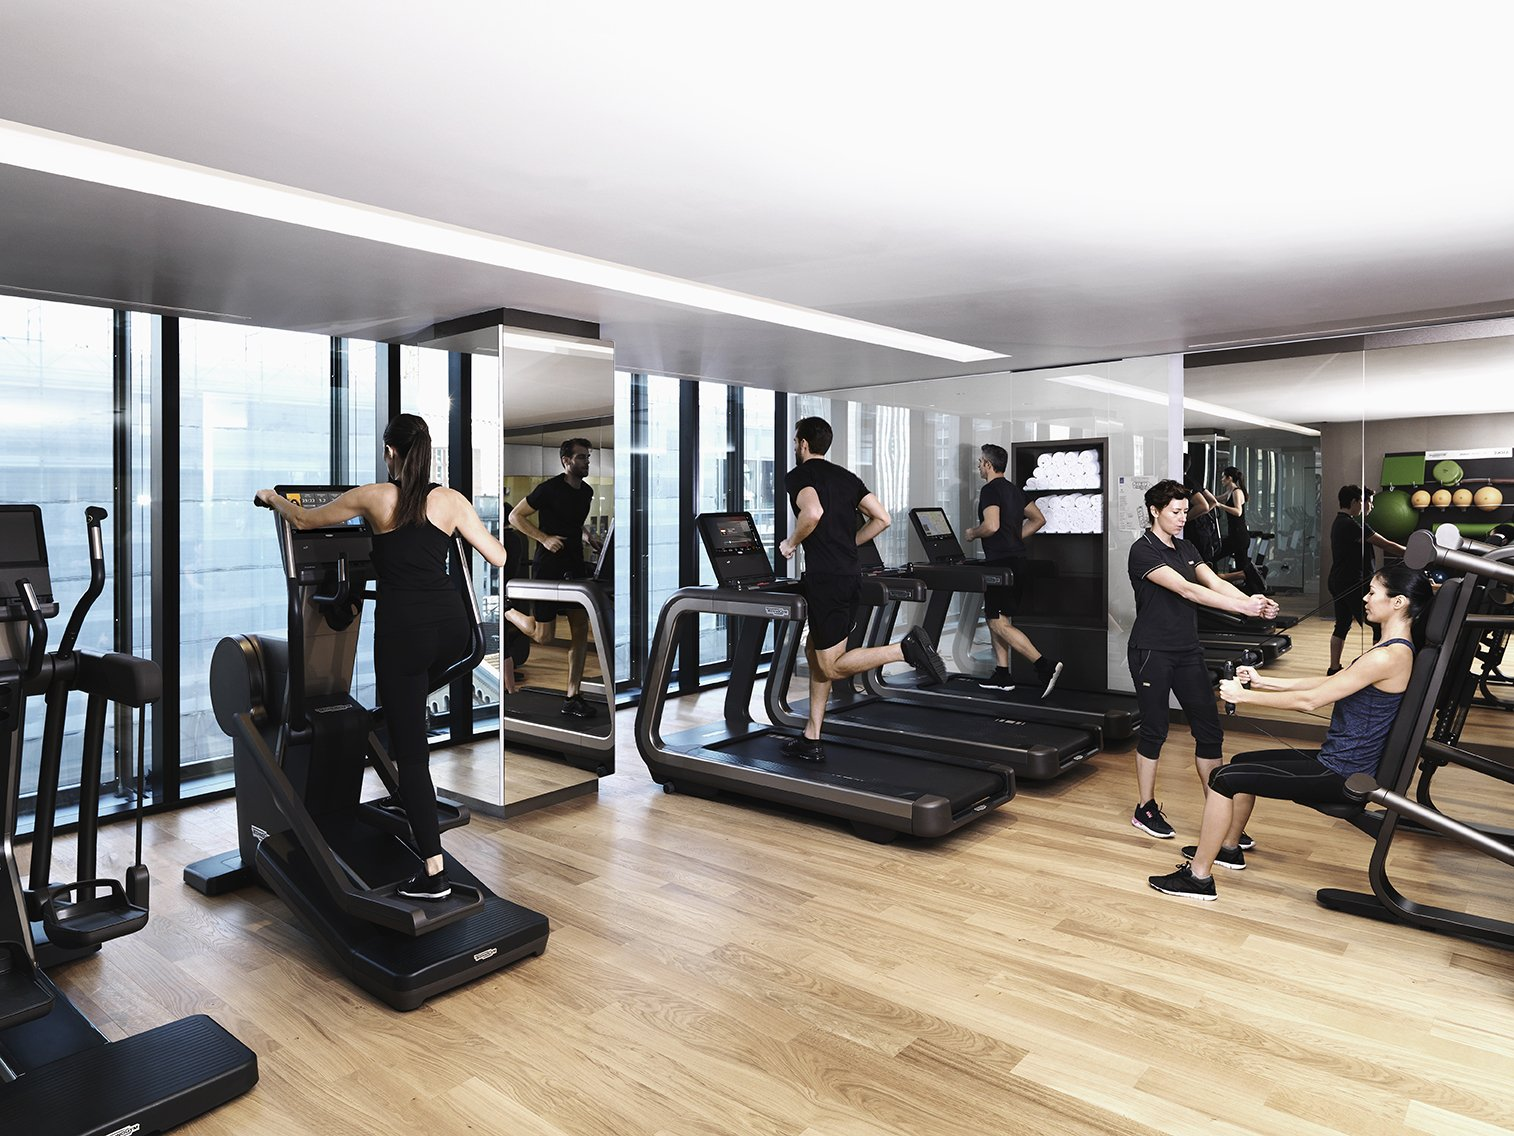 bespoke gyms for hotels cruise liners. Black Bedroom Furniture Sets. Home Design Ideas